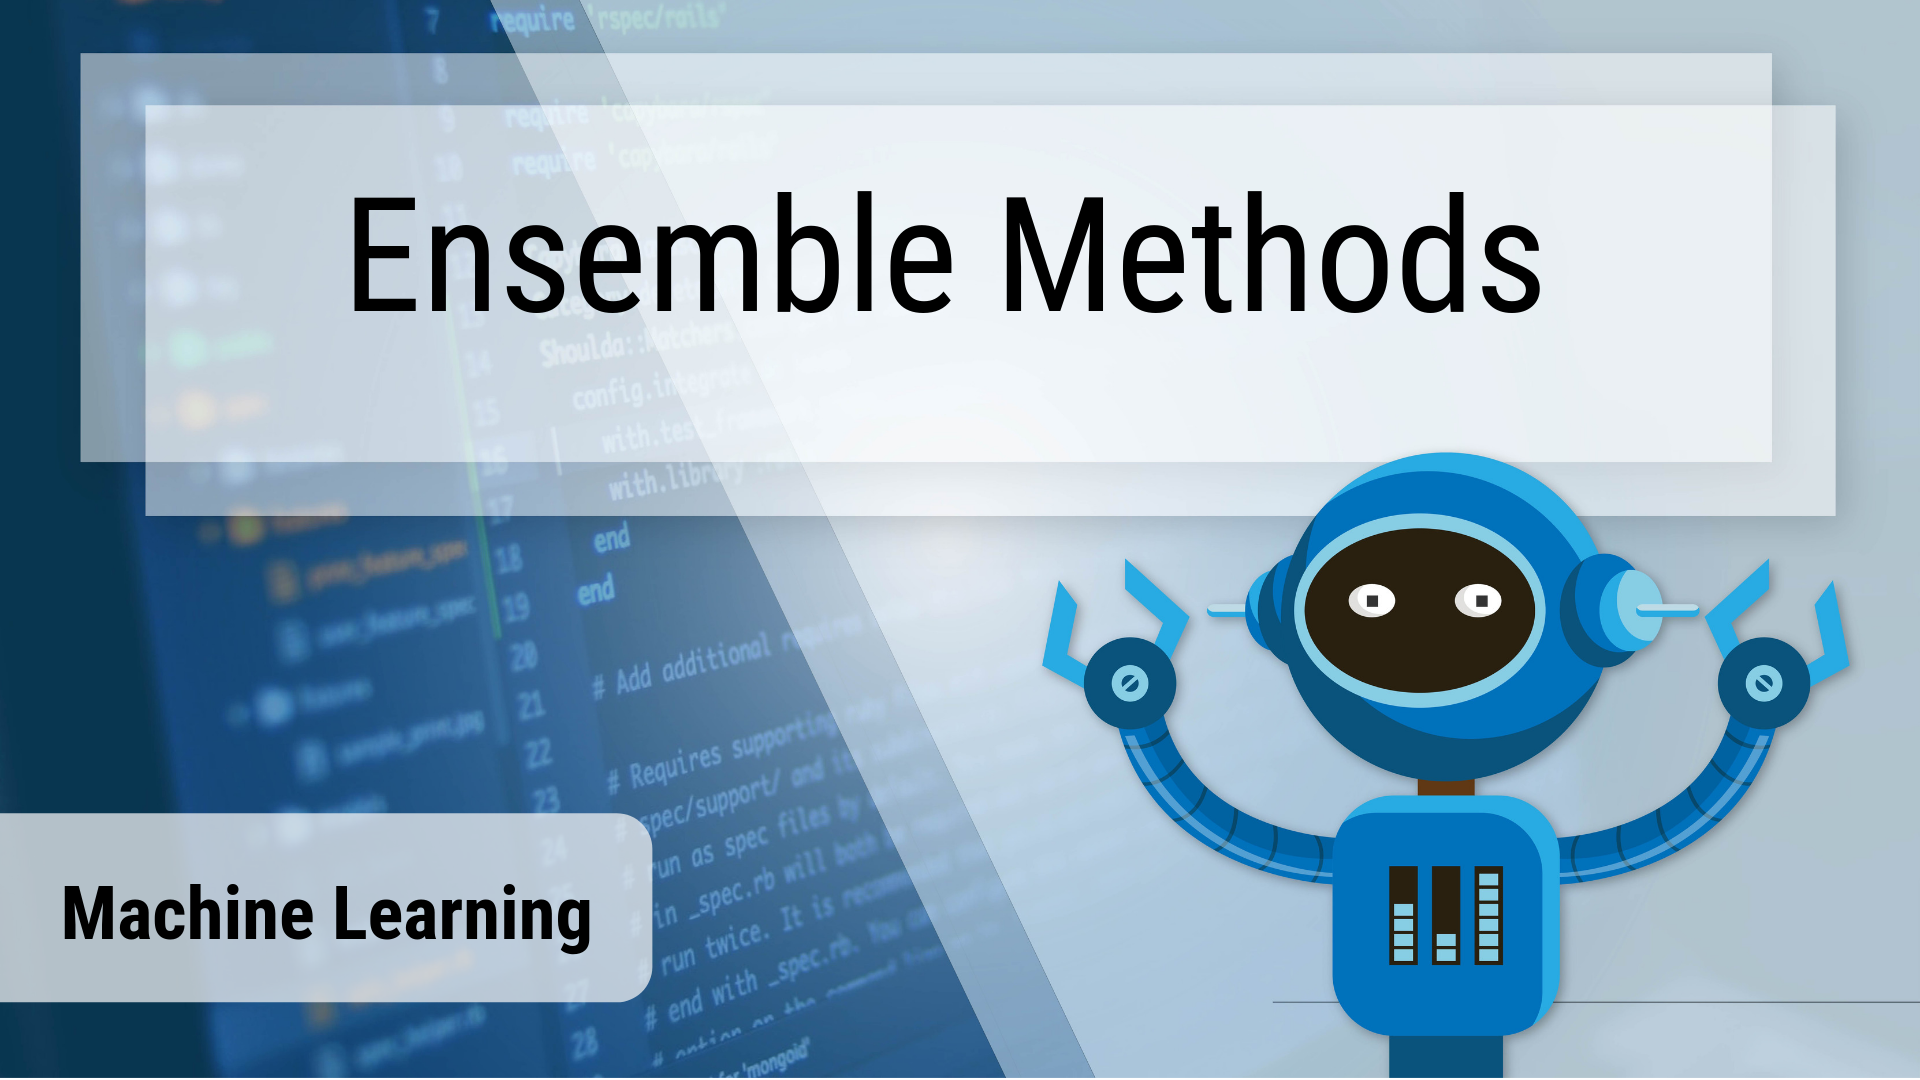 Ensemble Methods